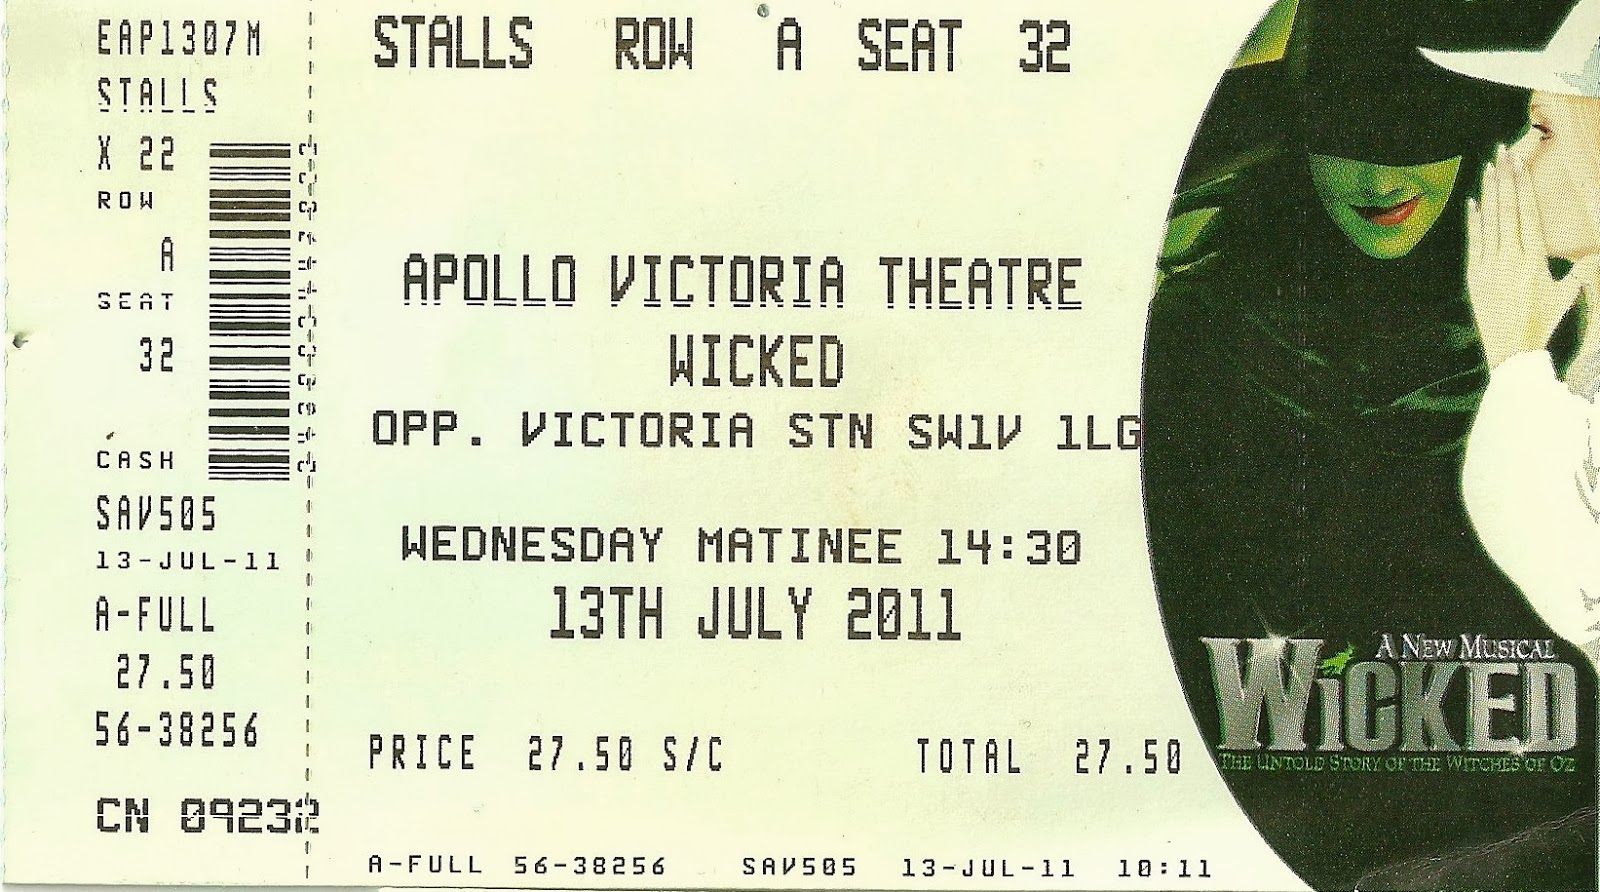 discount london theatre tickets west end theater shows